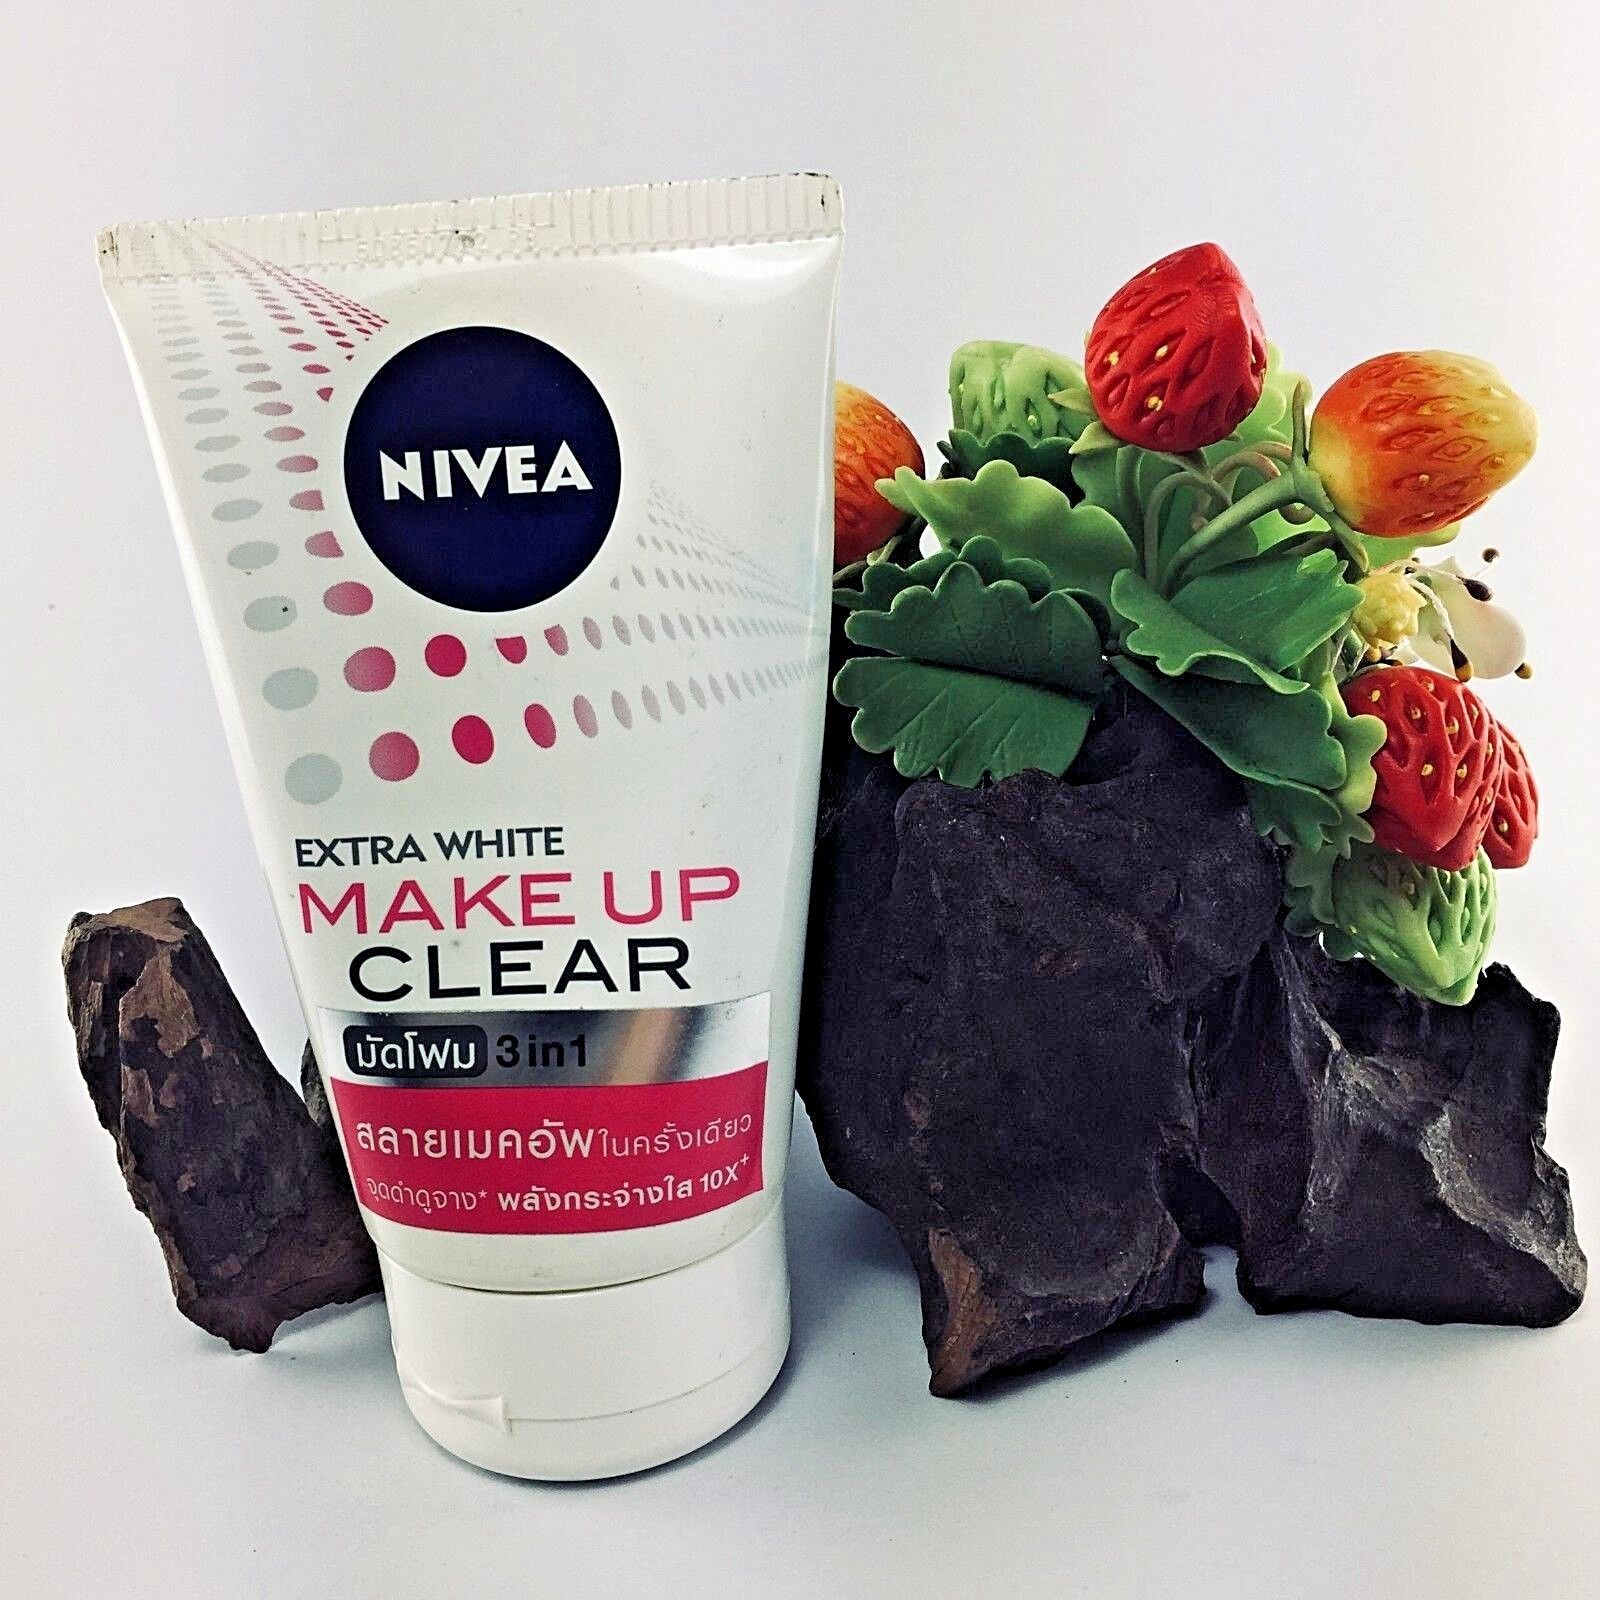 Nivea Extra White Make Up Clear 3 In1 Mud Foam 100 G 1 Pcs Ebay 2 In 100ml Norton Secured Powered By Verisign